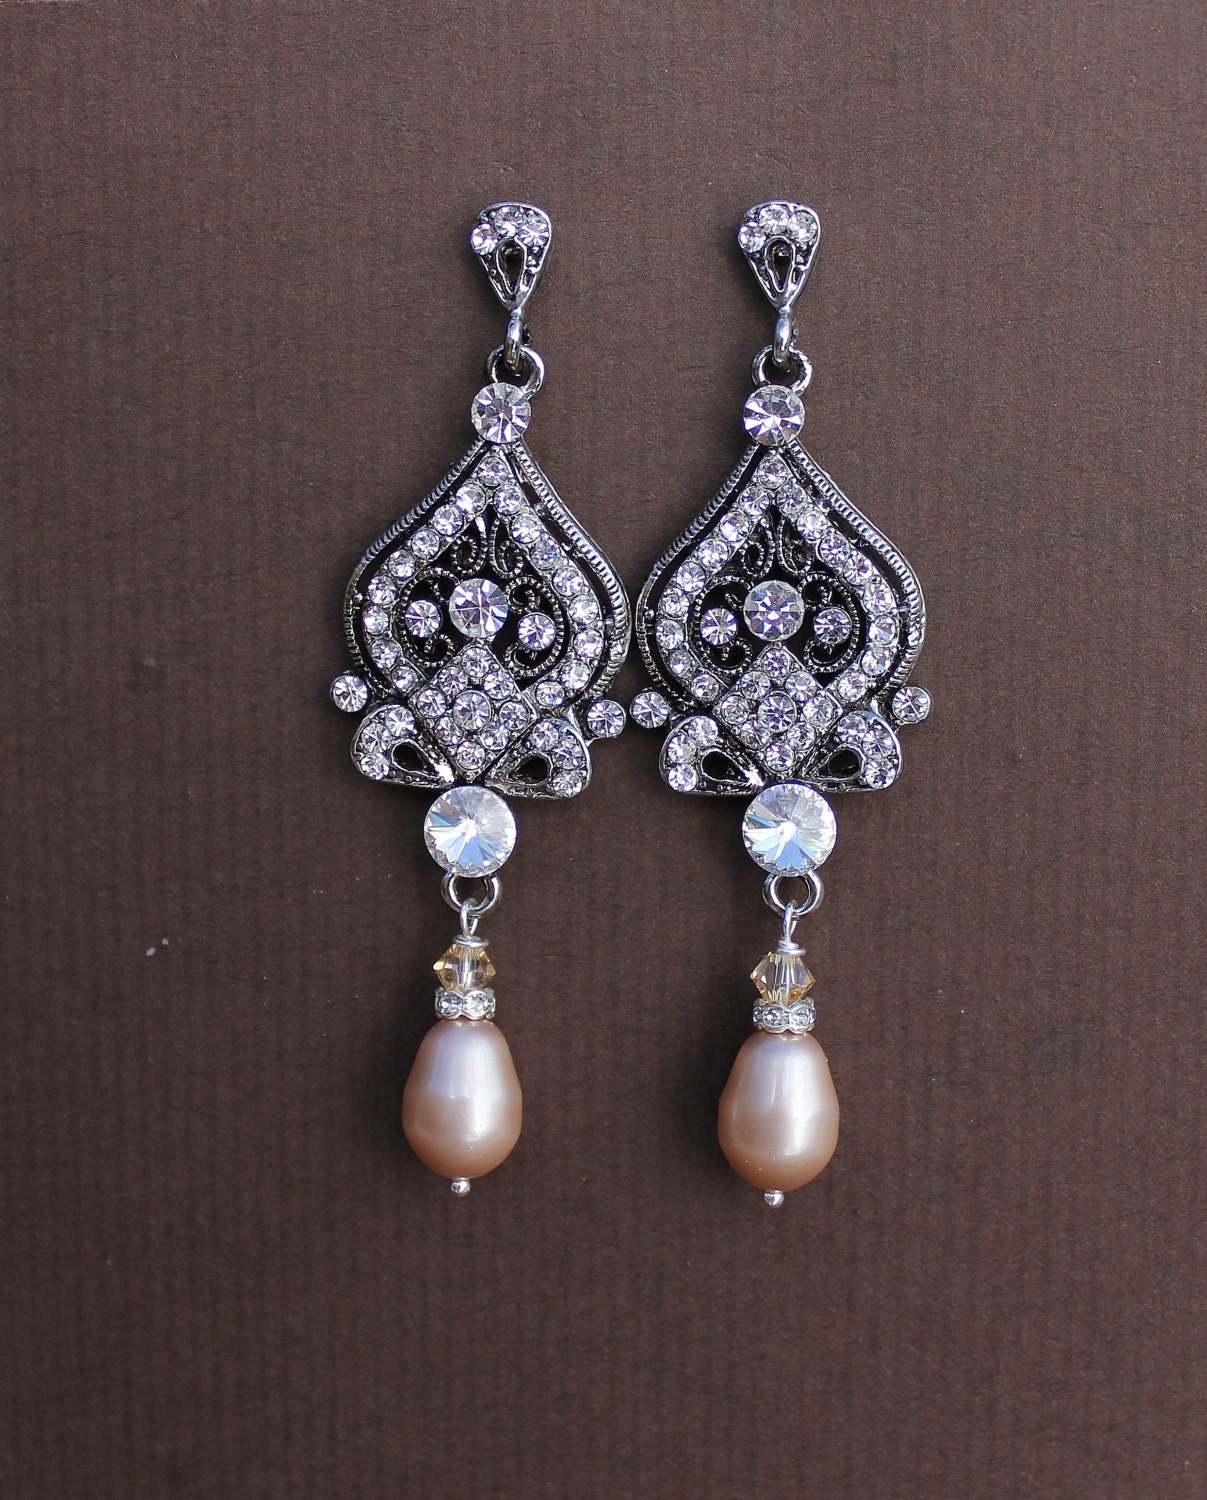 Crystal bridal earrings champagne pearl bridal earrings for Jewelry for champagne wedding dress